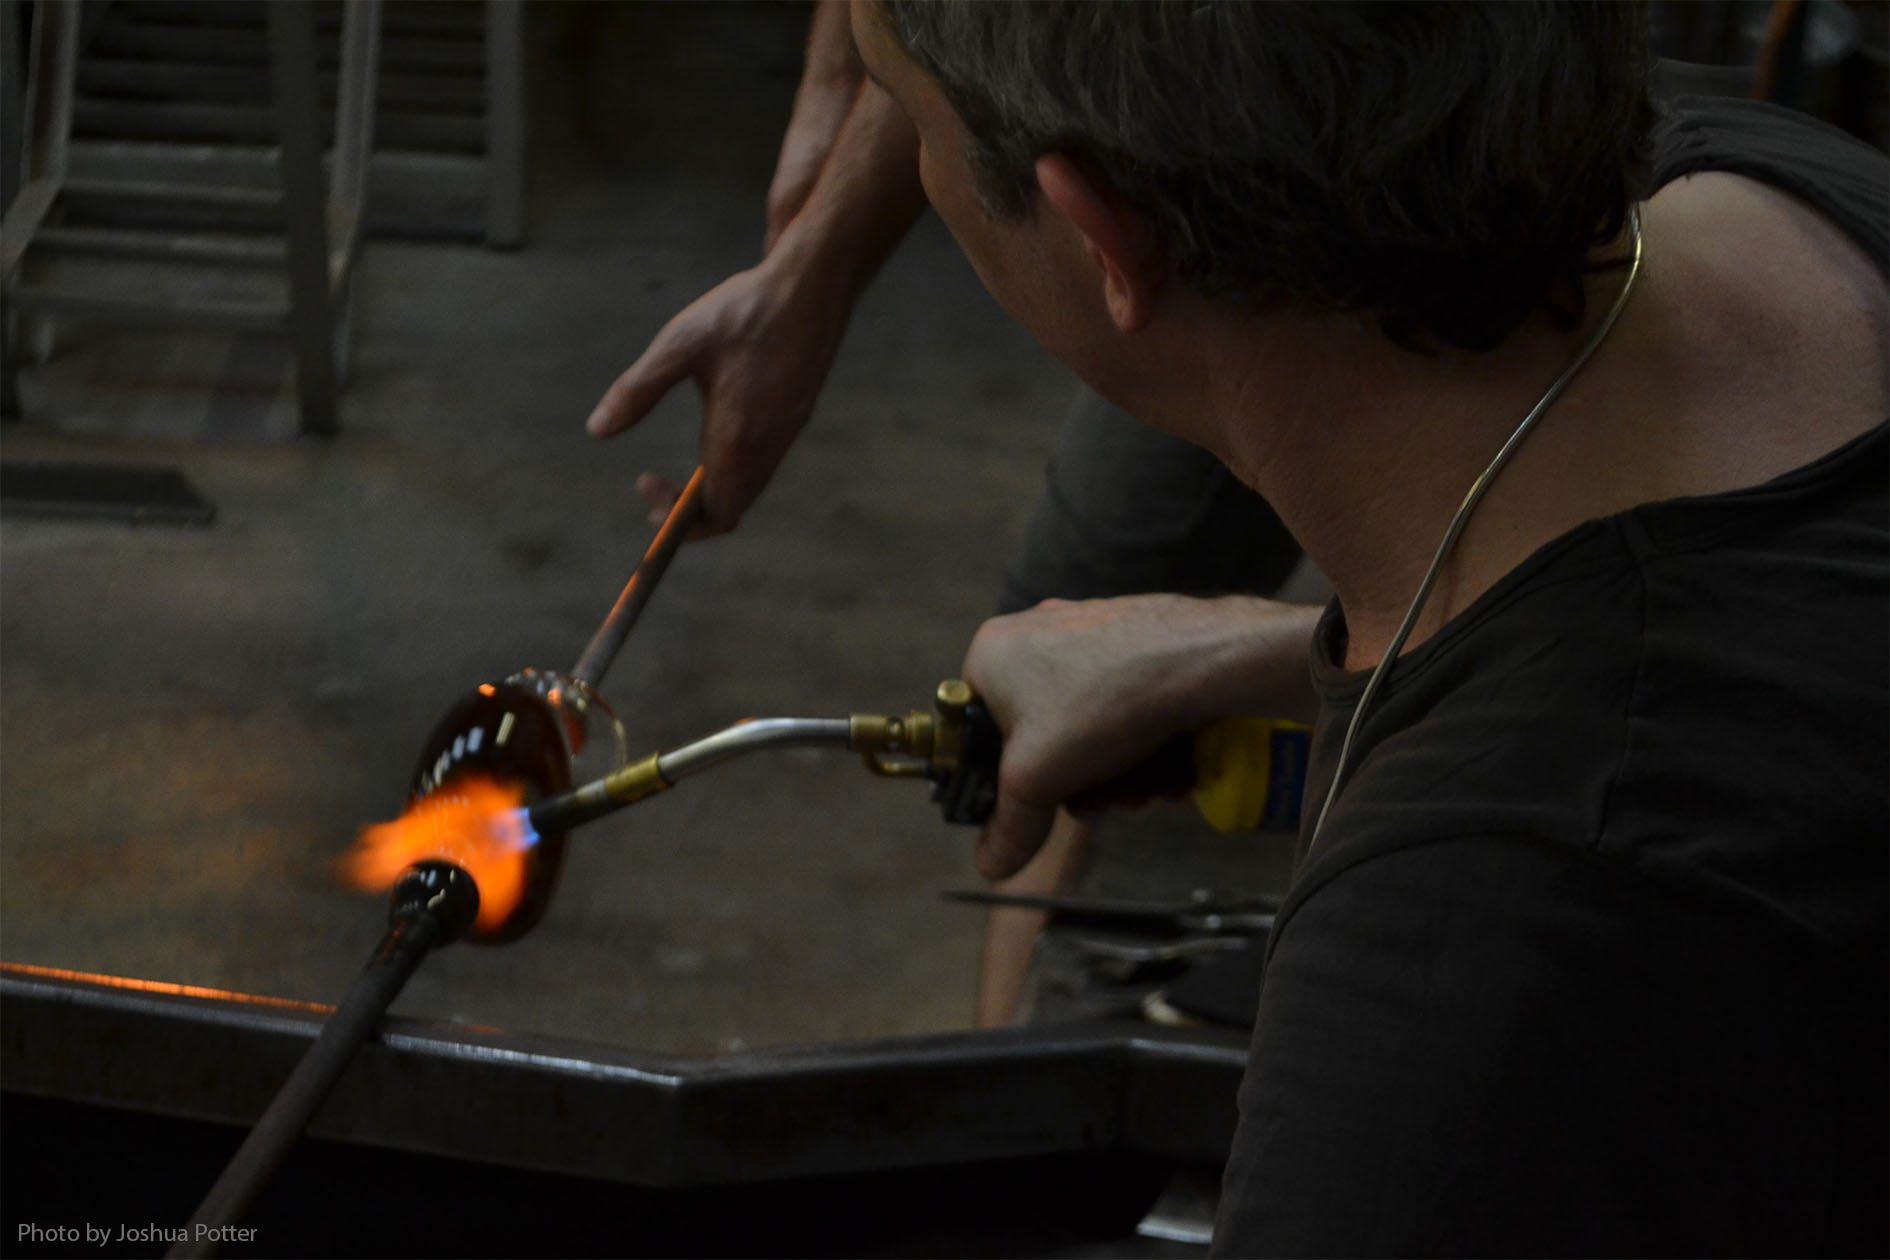 London Glassblowing was set up in 1976 by Peter Layton and was one of the first of its kind in Europe. Now turning 80, Peter himself lets the resident artists run the studio and produce most of the work. Here they have just completed the main structure of a perfume bottle and are transferring it from one worker to another, who will continue to shape and refine it.